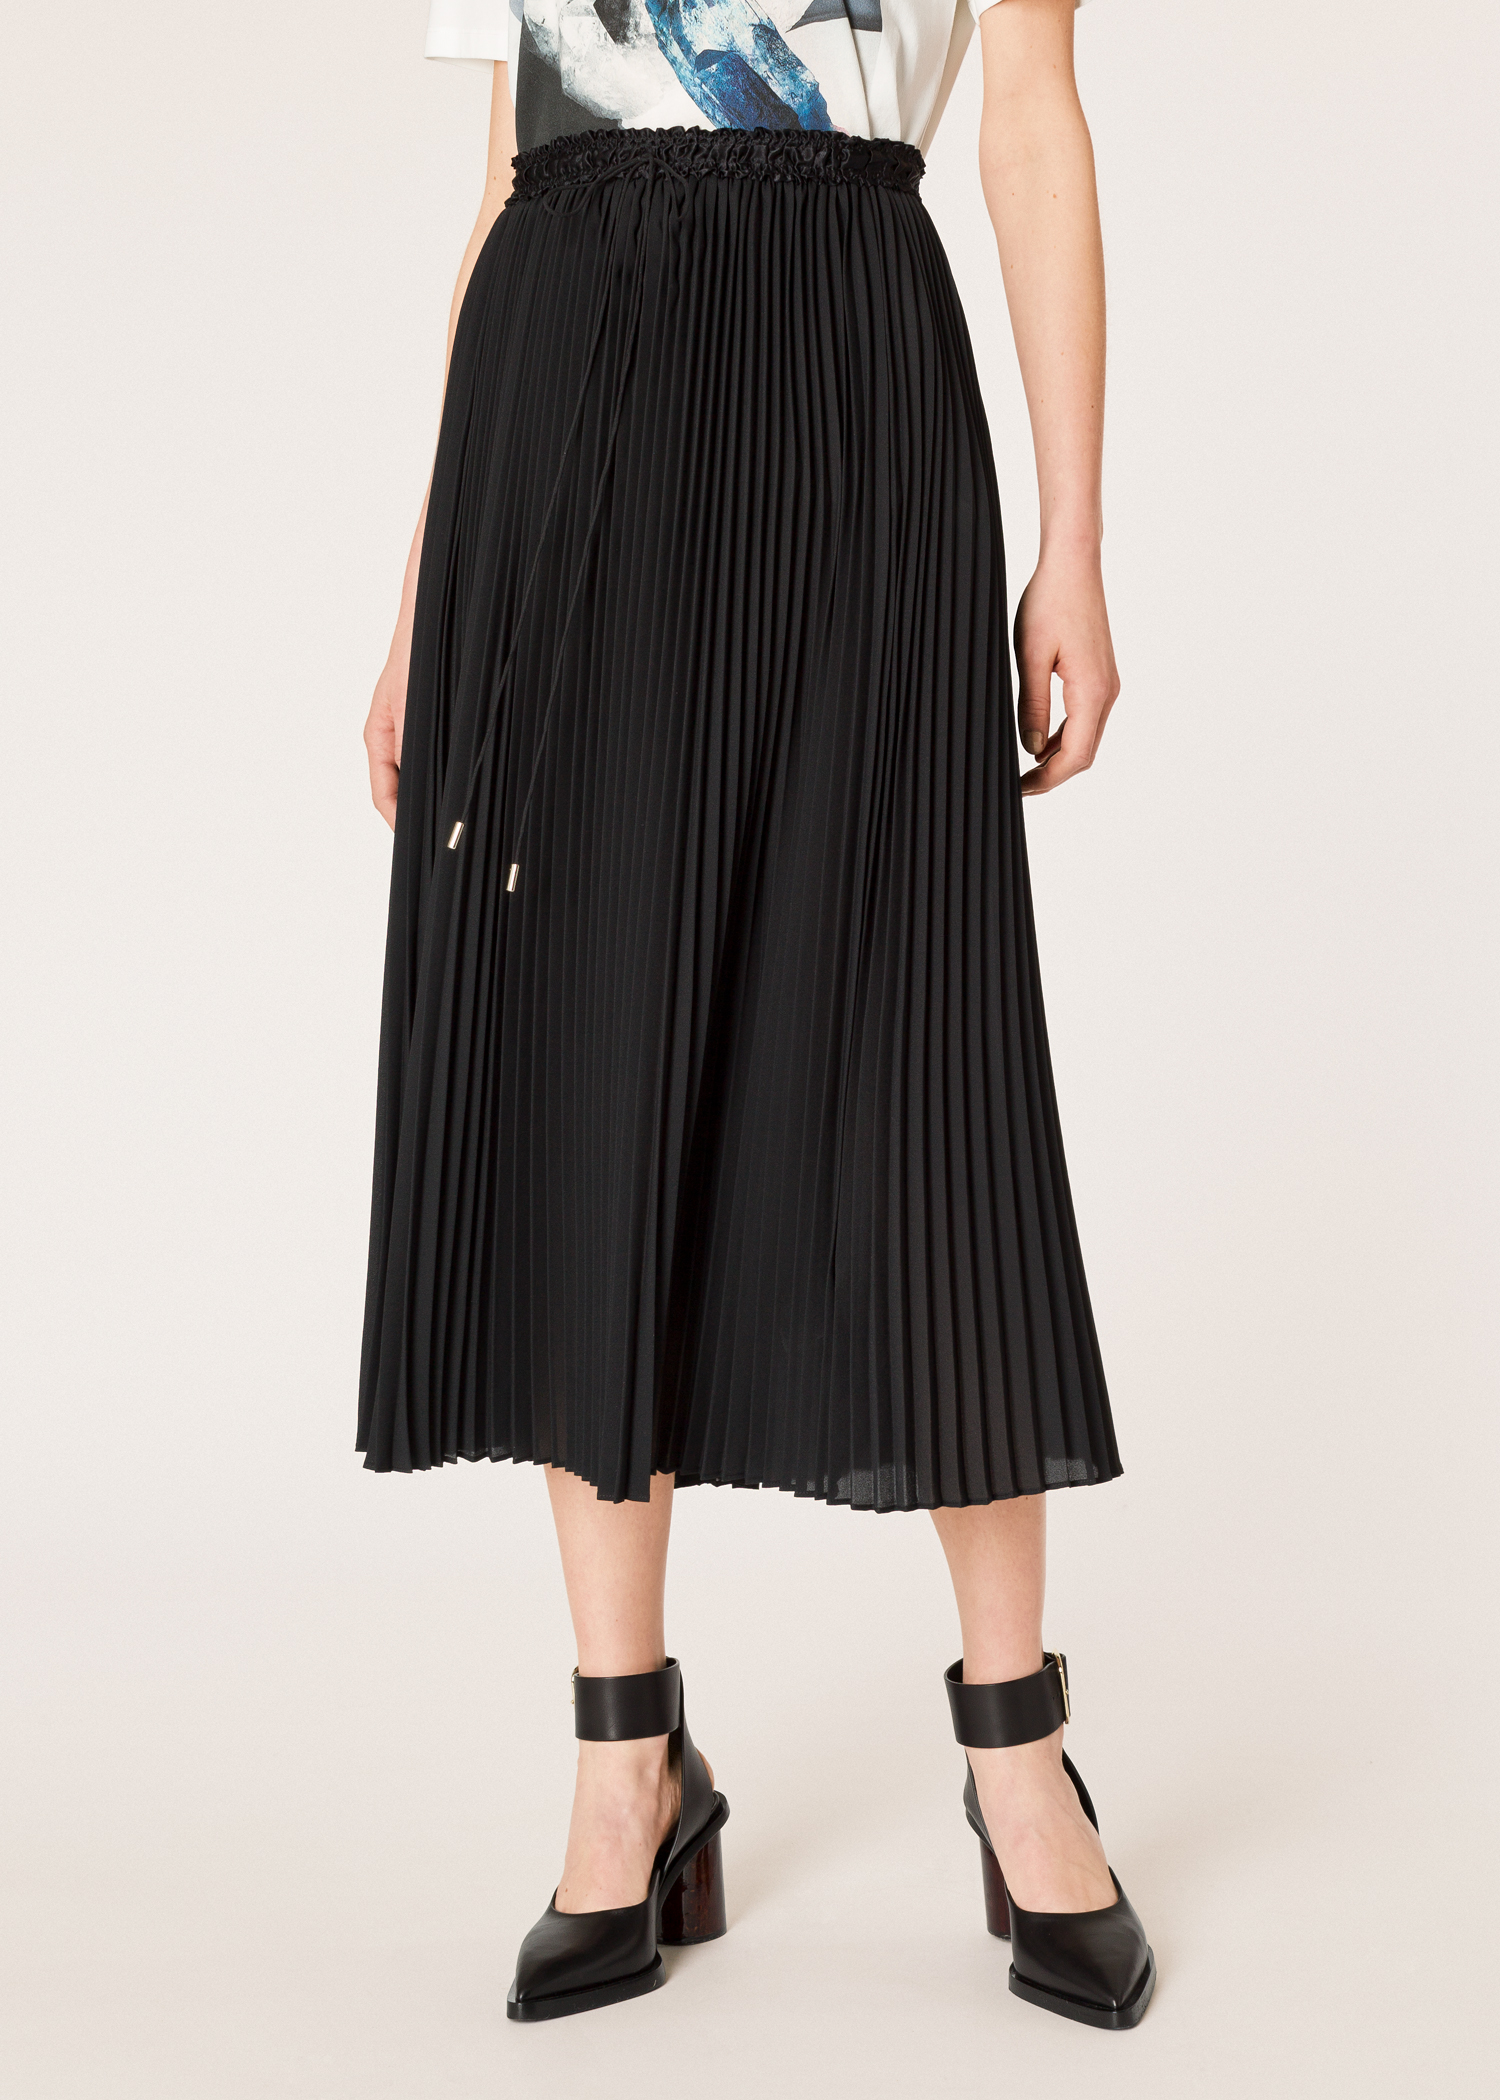 c1b520ca7c Model front close up - Women's Black Pleated Midi Skirt Paul Smith